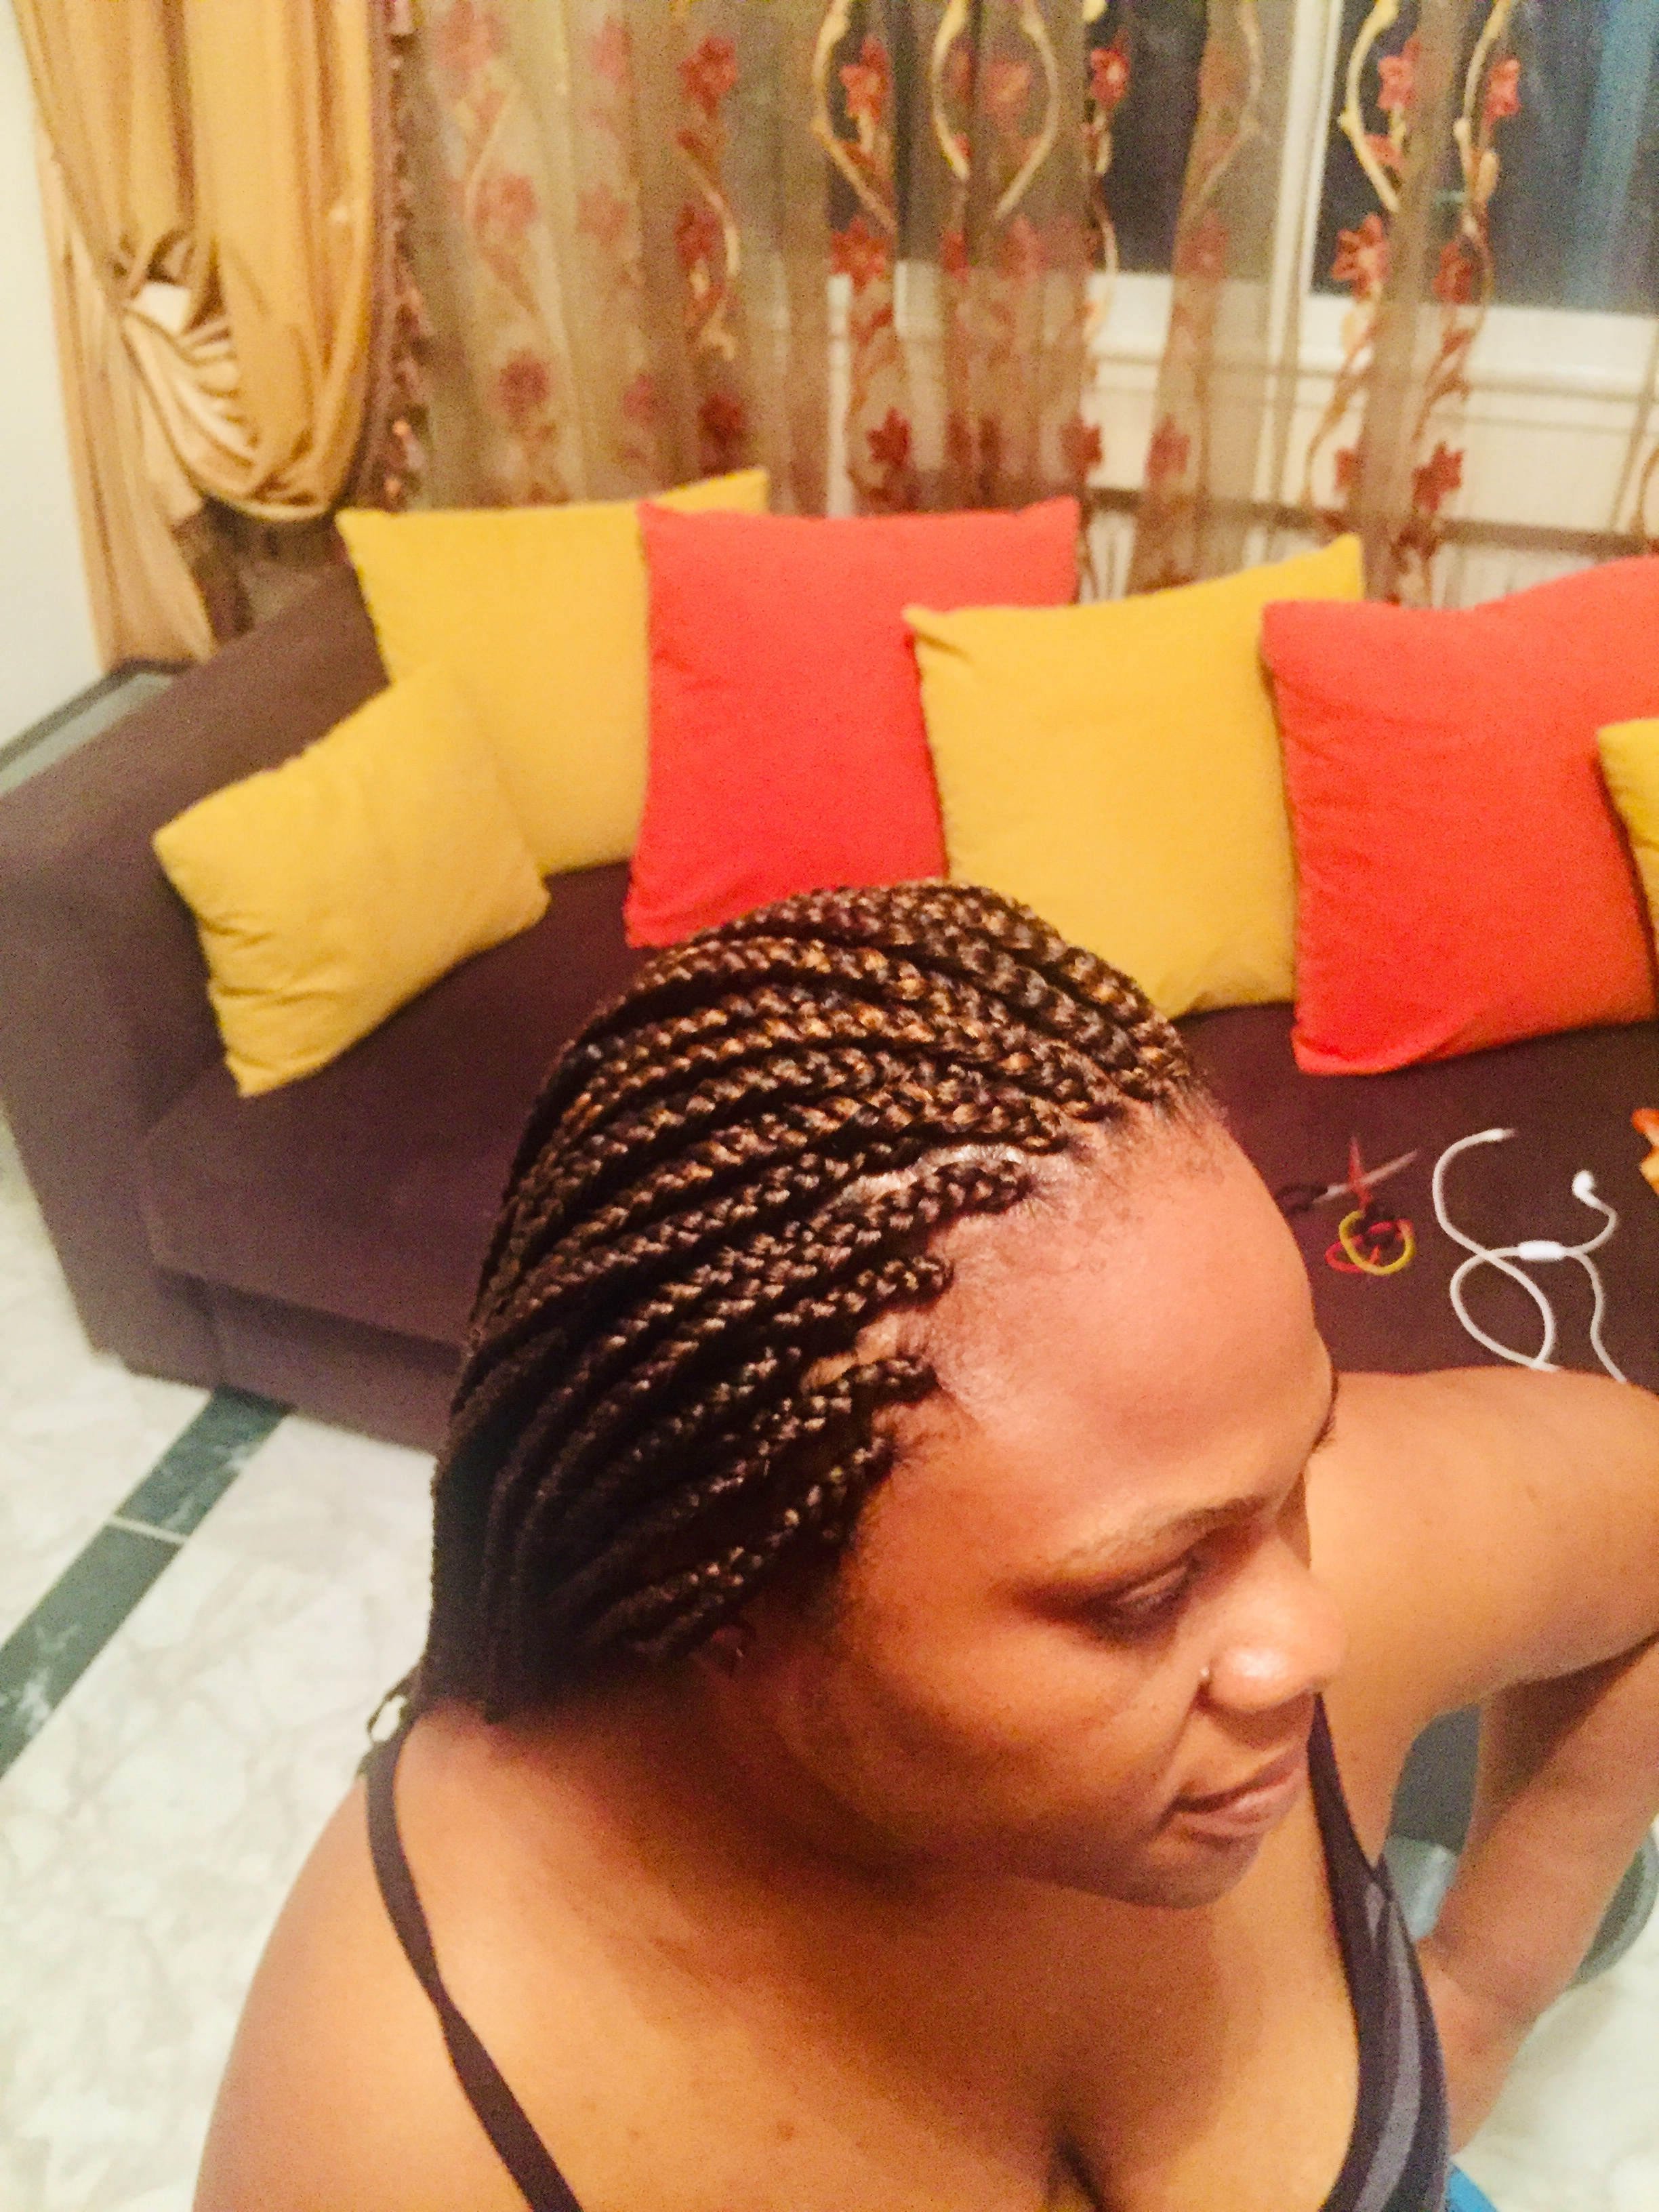 salon de coiffure afro tresse tresses box braids crochet braids vanilles tissages paris 75 77 78 91 92 93 94 95 OKESFRTS